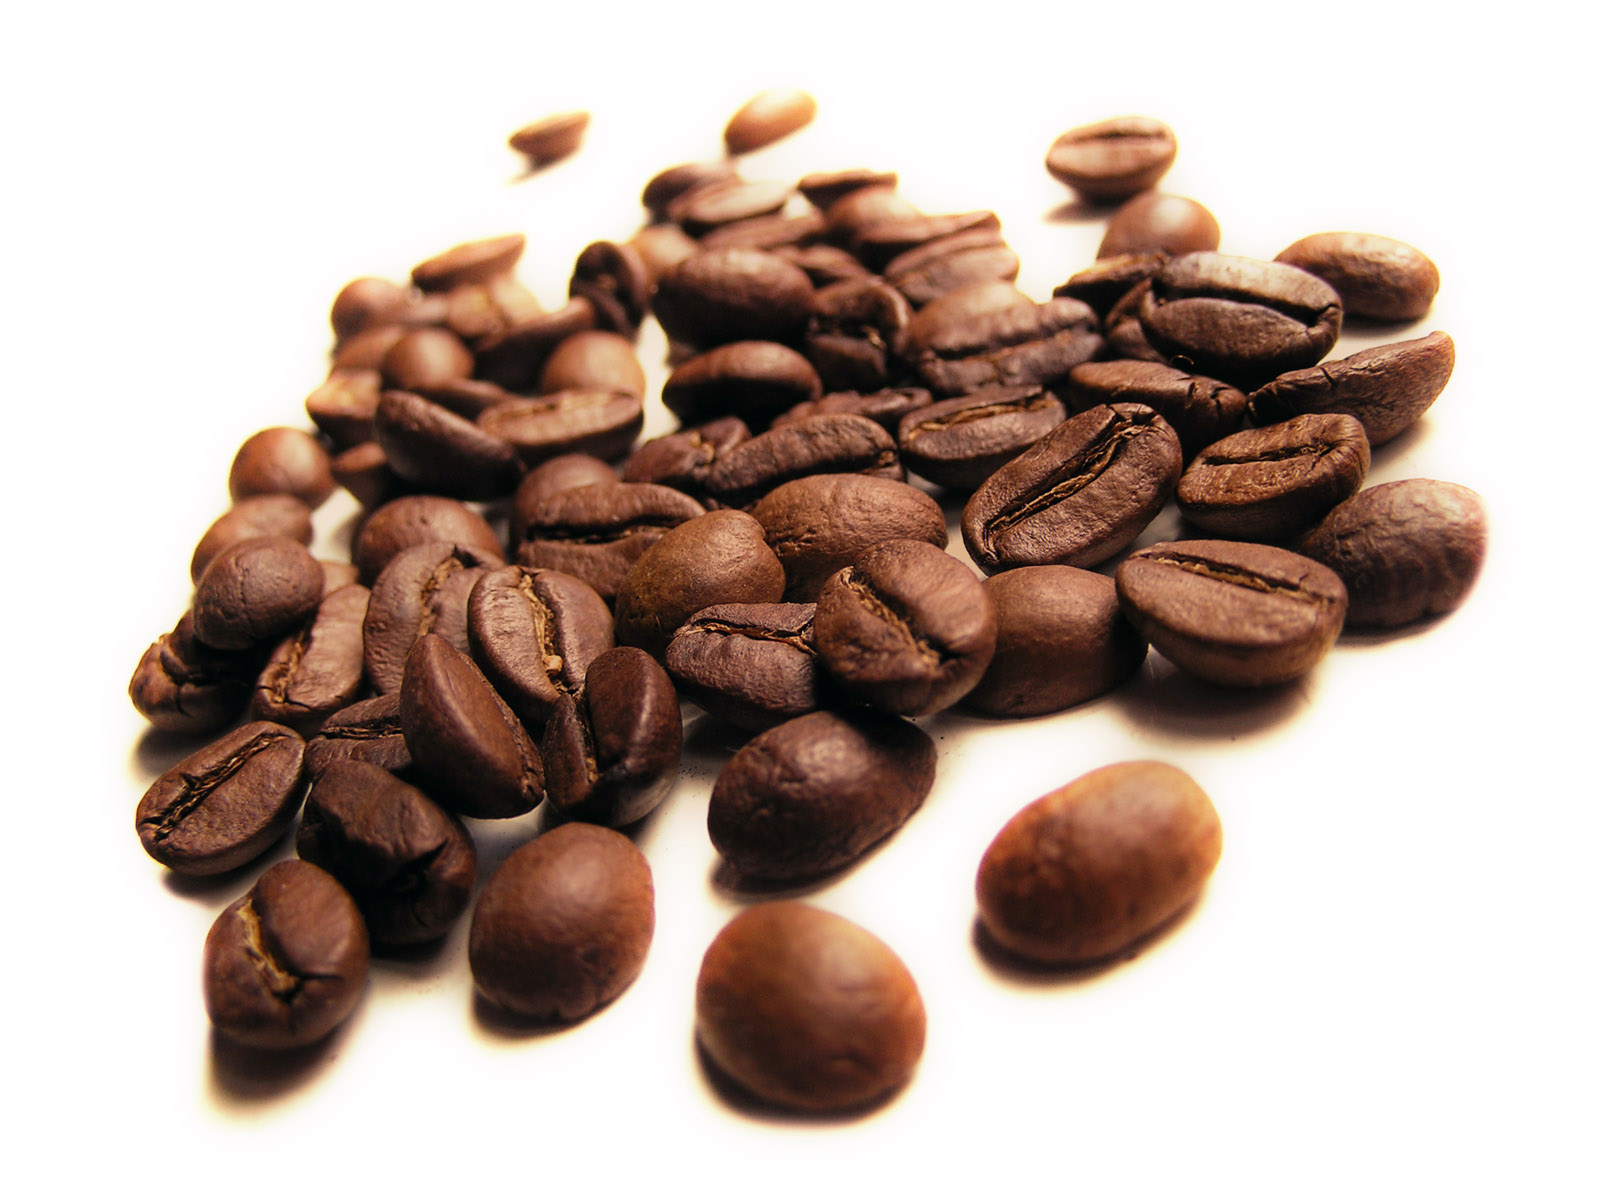 Coffee wallpaper high definition 12831